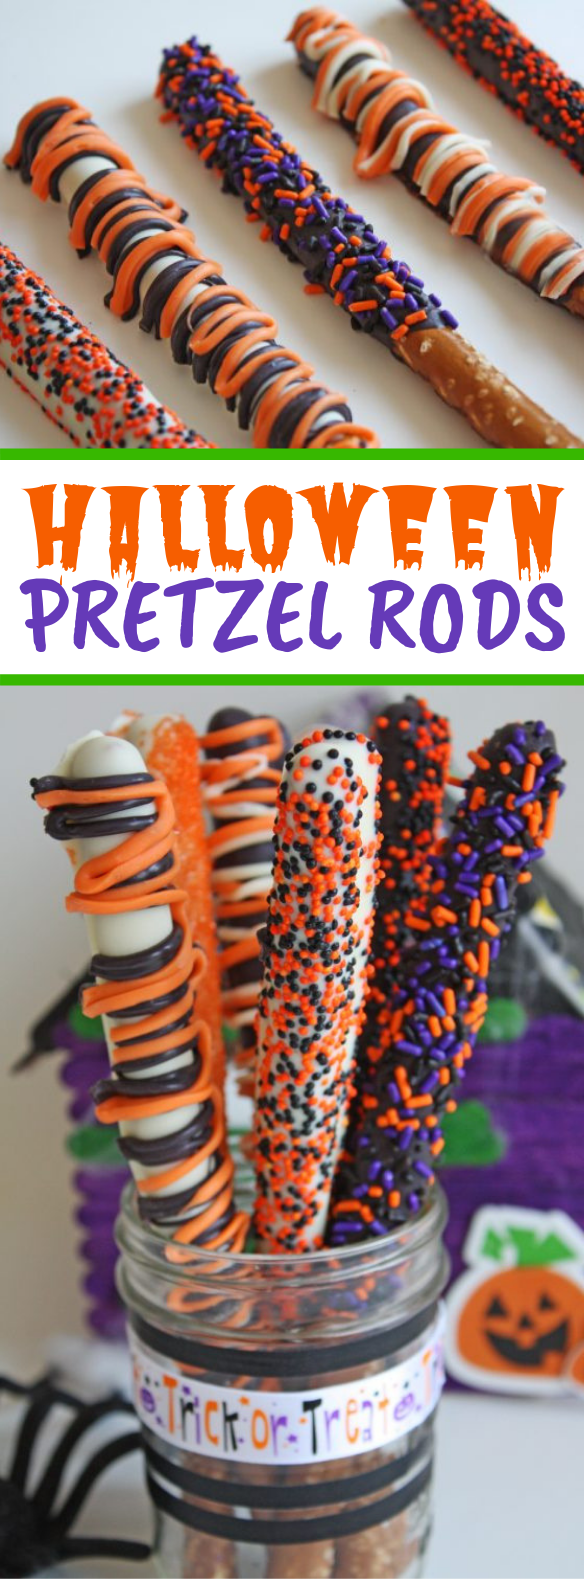 Make These Quick and Easy Halloween Pretzel Rods! #desserts #snacks